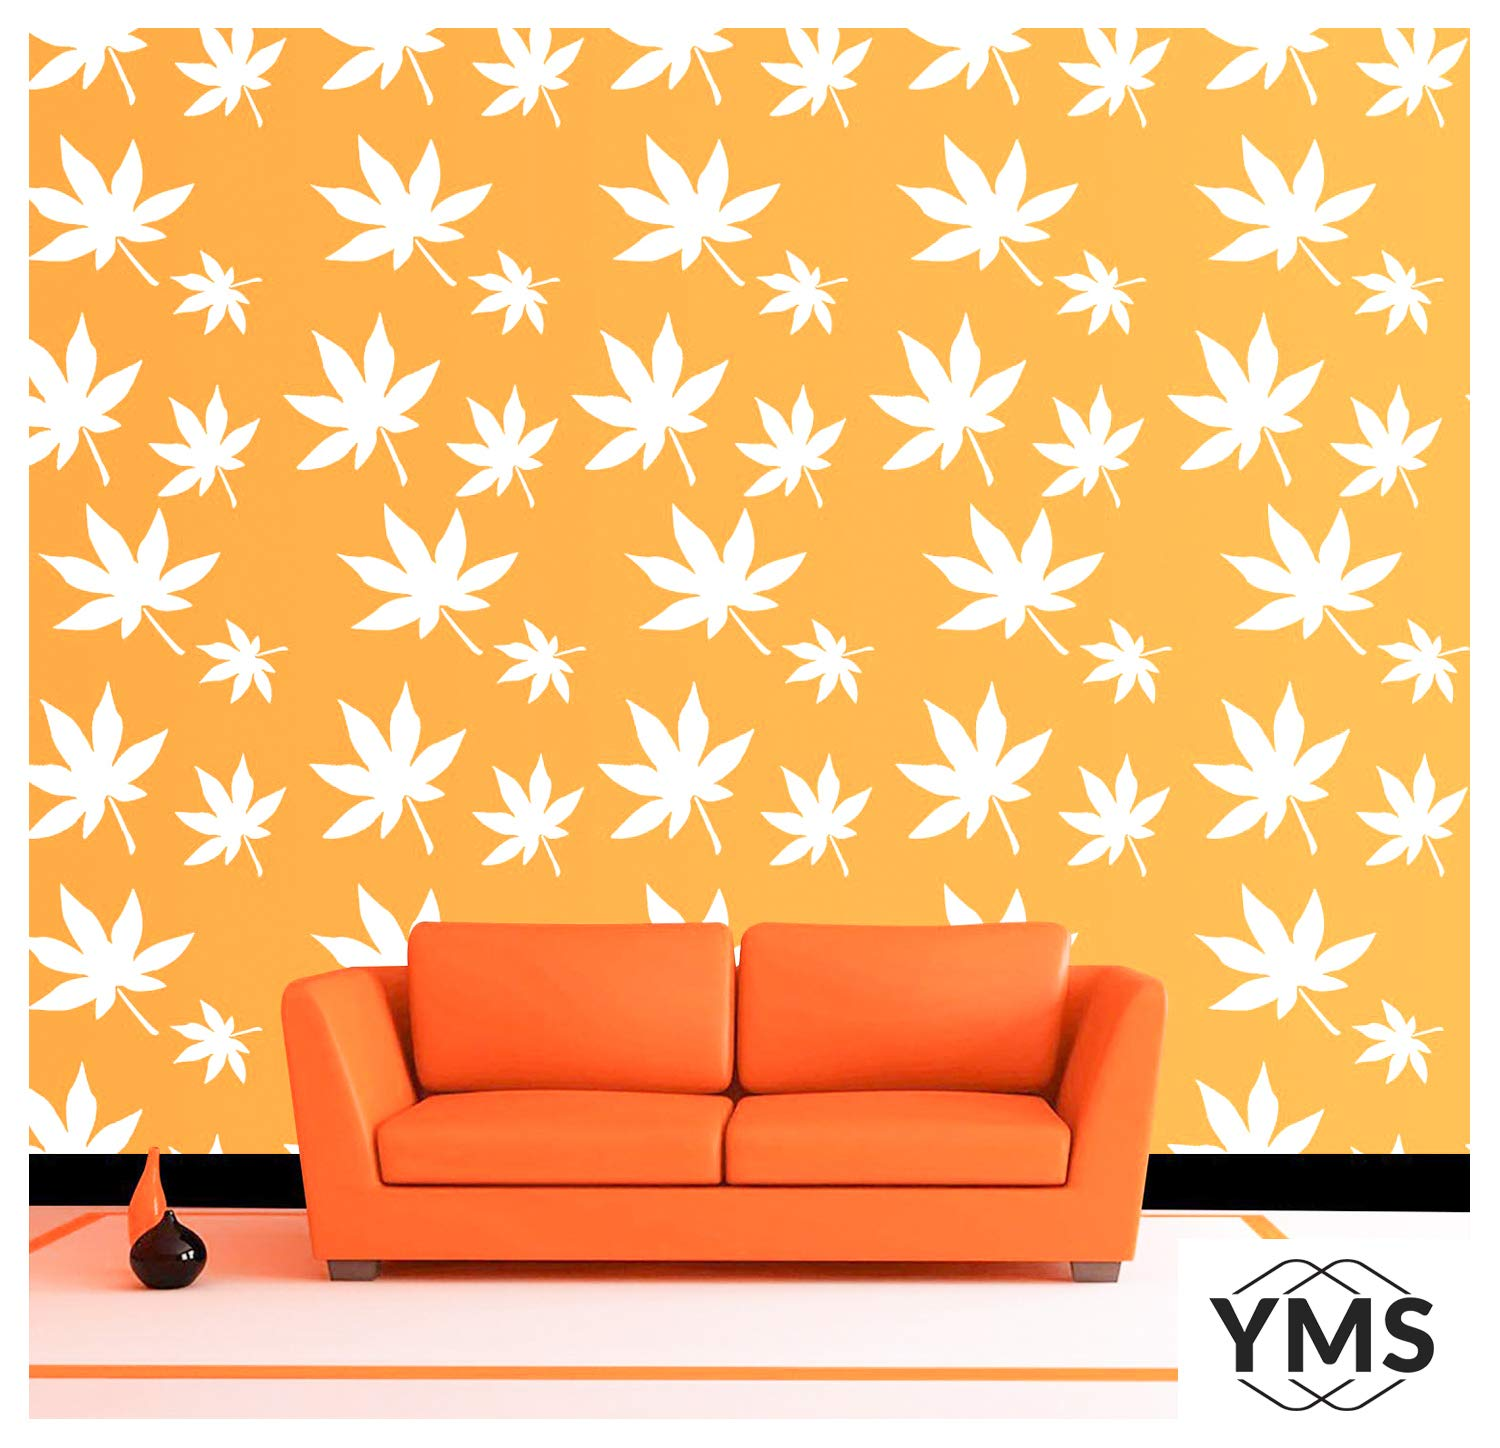 YMS Chestnut Pattern Reusable DIY Wall Stencils for Home Wall Decor (PVC,  15-inch X 15-inch)